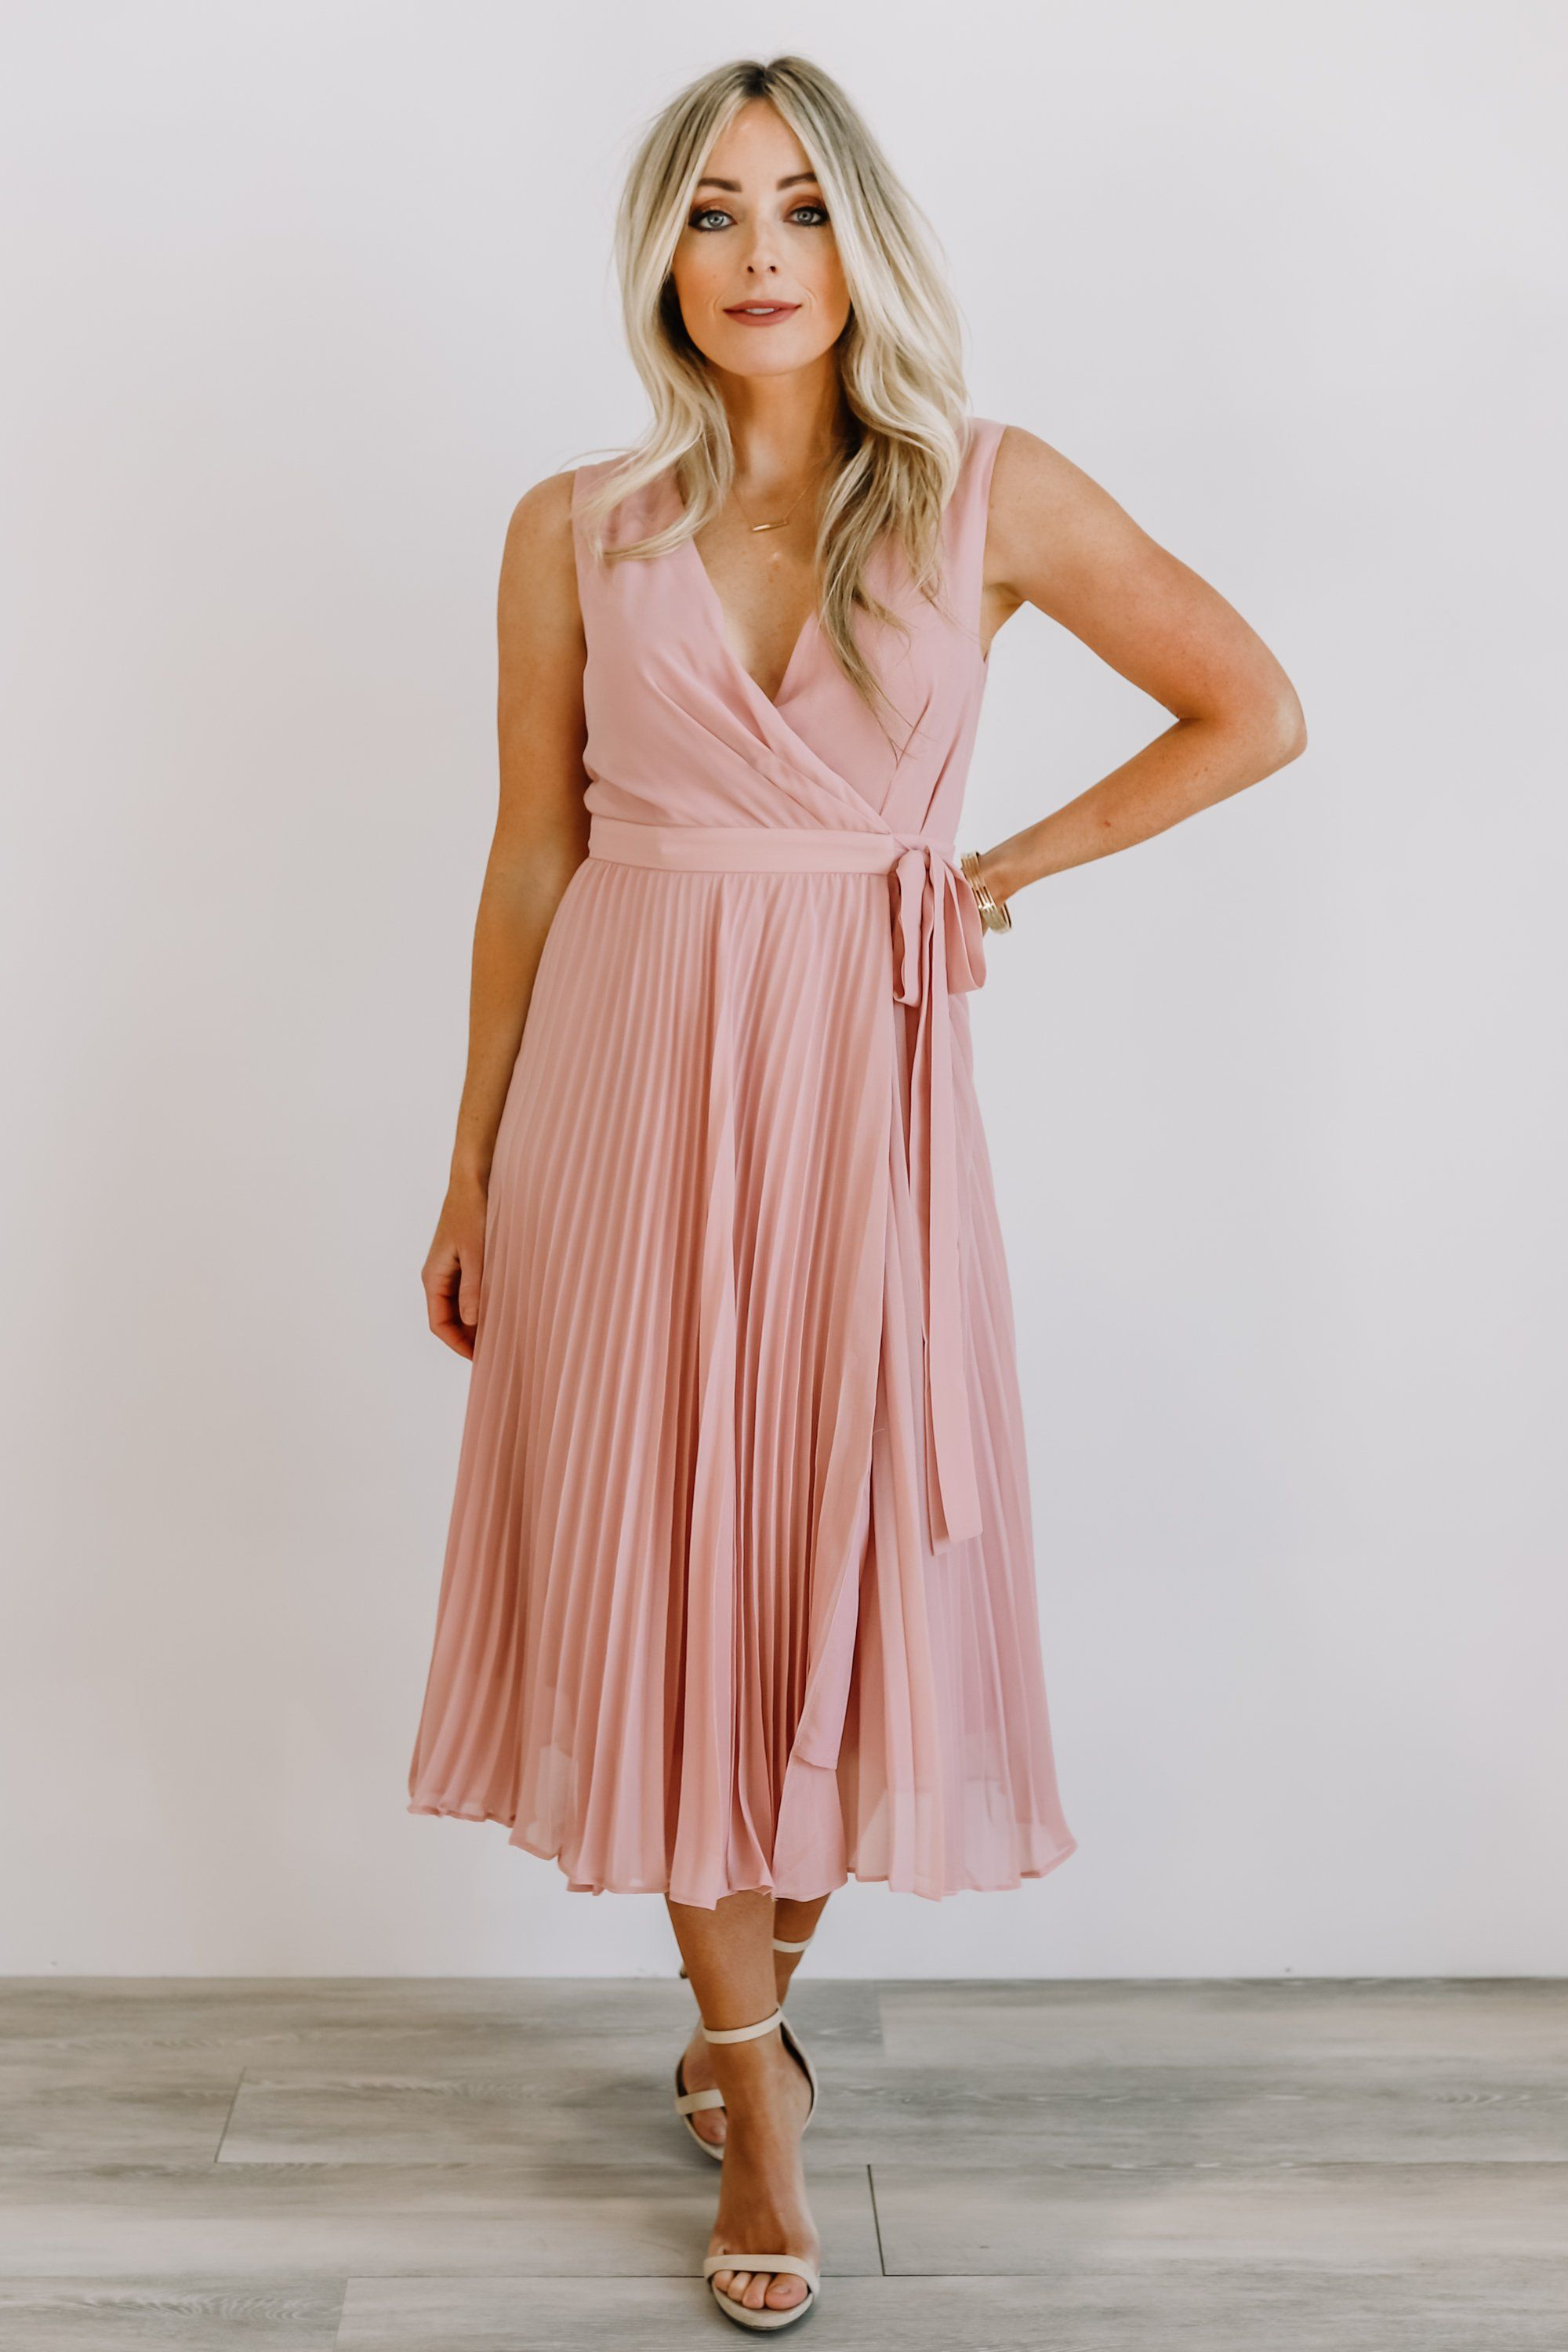 Features Wrap Style With Button Snap Closure And Self Tie At Left Side Of Waistpleated Skirt Thick Tank Top Styl Pleated Midi Dress Midi Dress Tank Top Fashion [ 3000 x 2000 Pixel ]